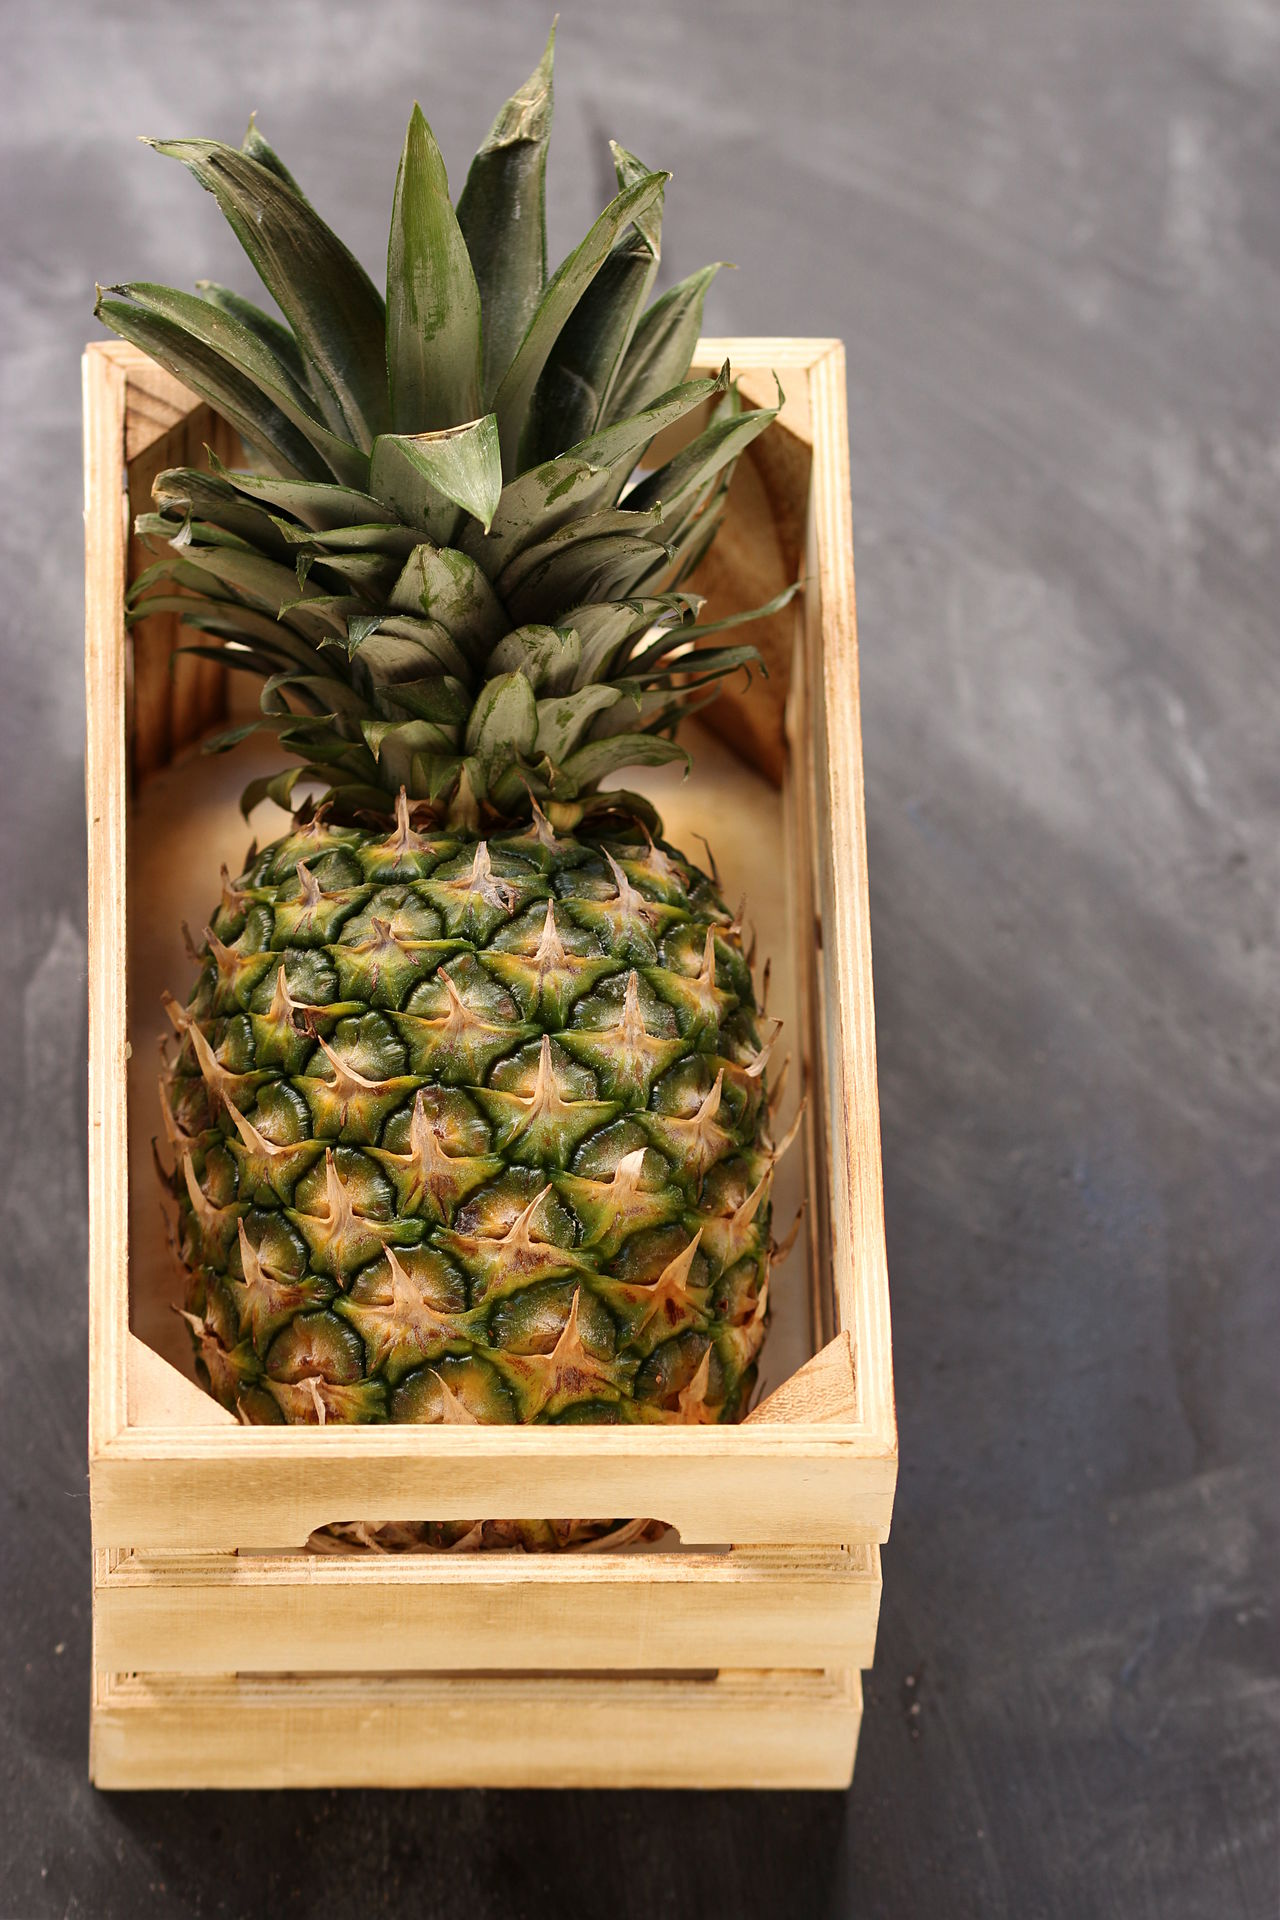 Ananas Exotic Fruit Exotic Fruits Food Freshness Fruit Fruits Healthy Eating Nature Pineapple